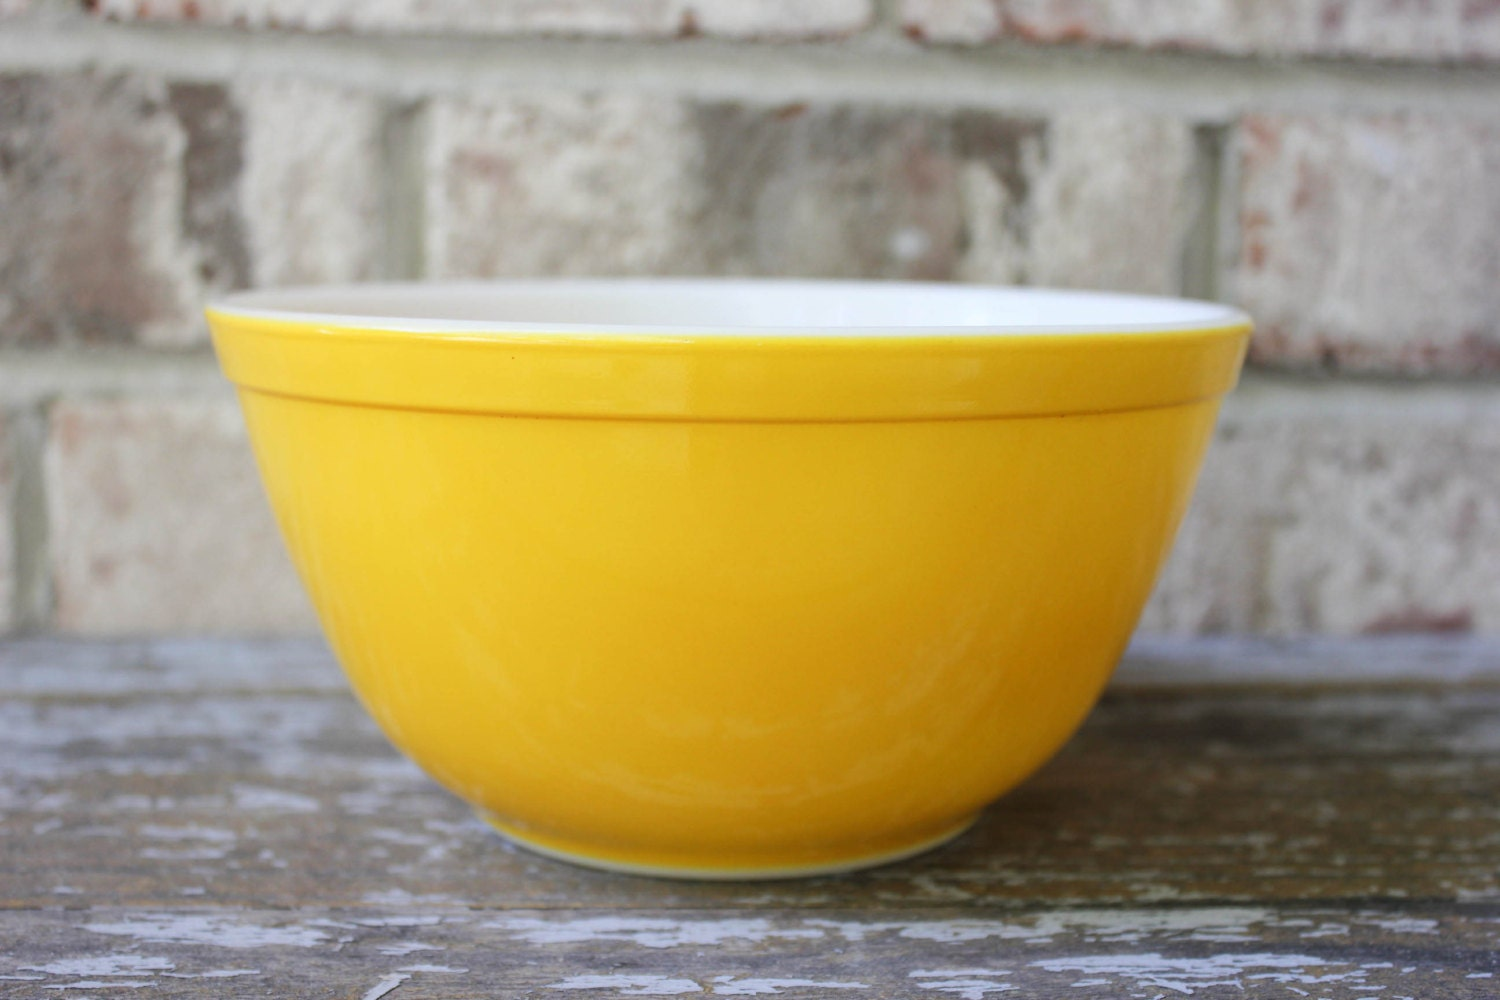 Vintage yellow PYREX mixing bowl 402 1 1/2 quart QT from Daisy